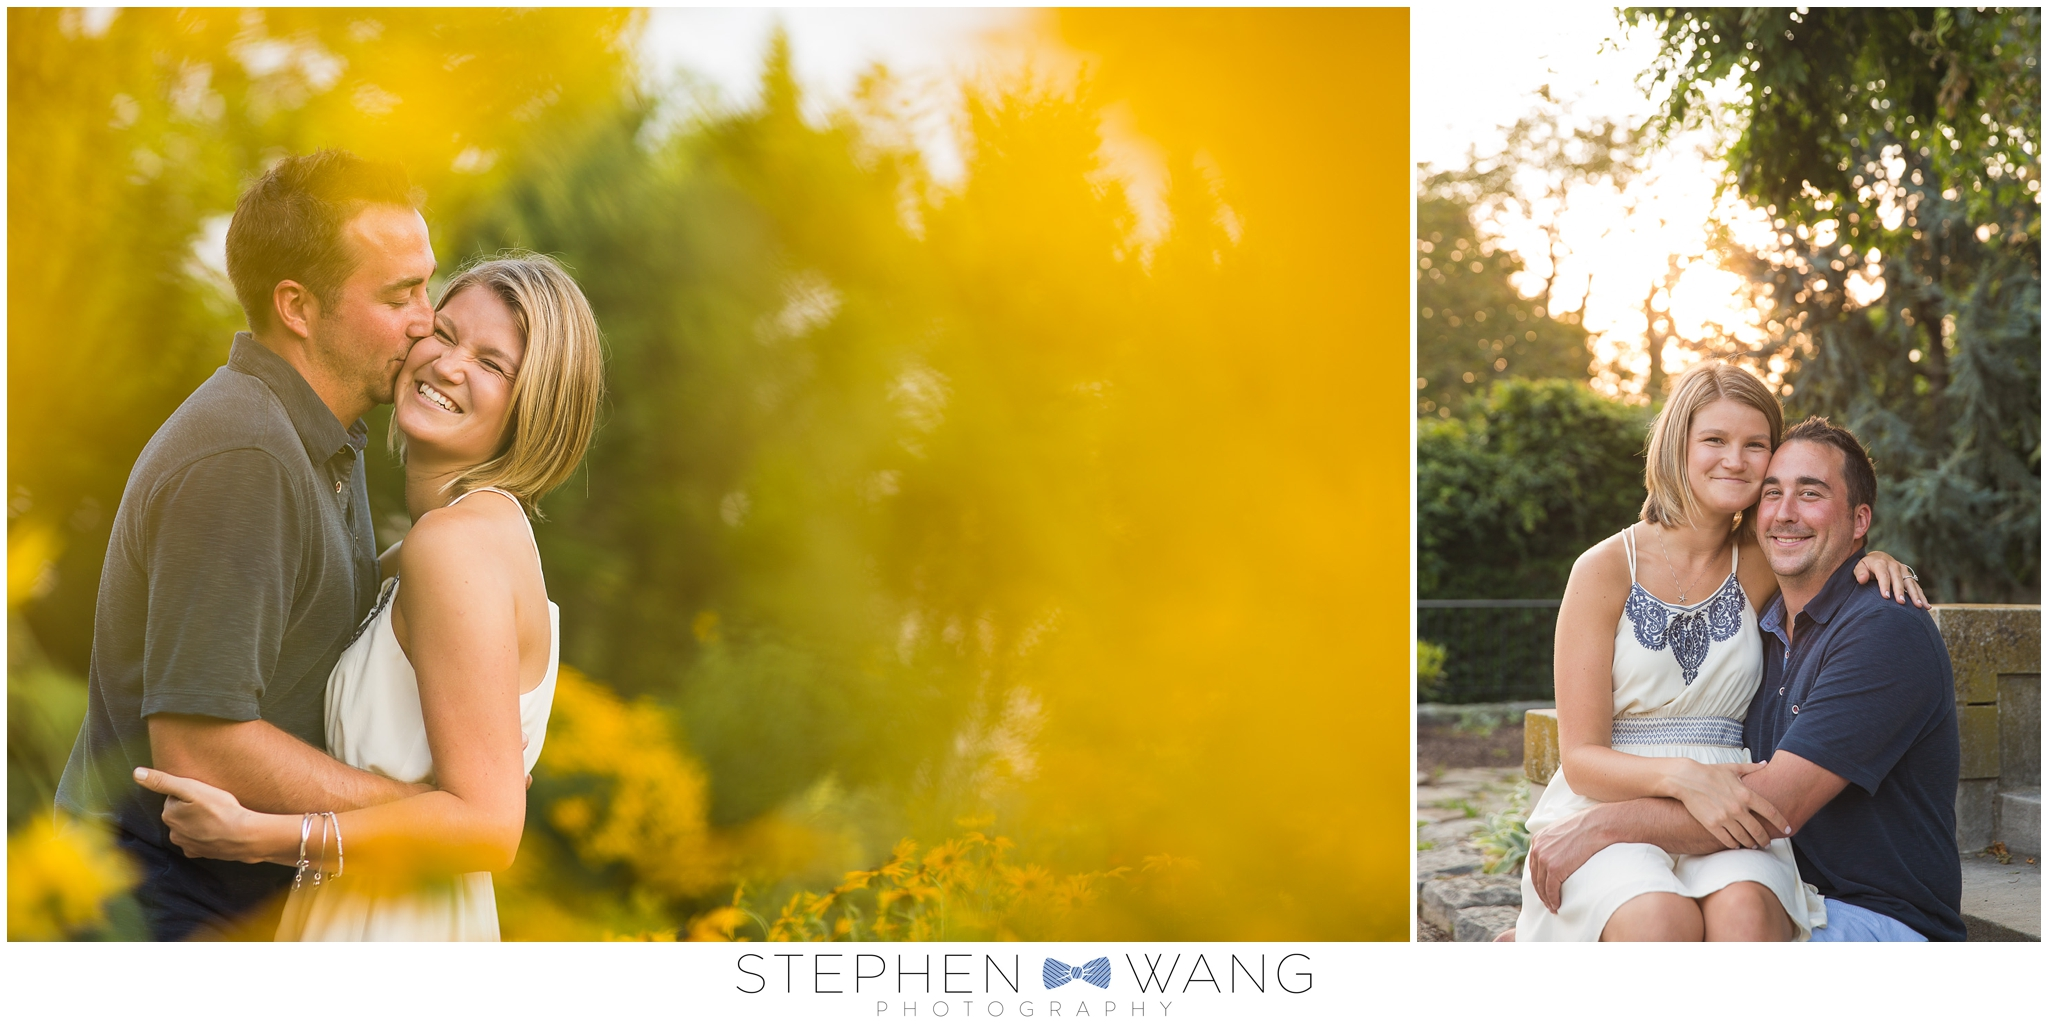 stephen wang photography connecticut wedding photographer harkness park engagement session ct shoreline eolia mansion _0004.jpg